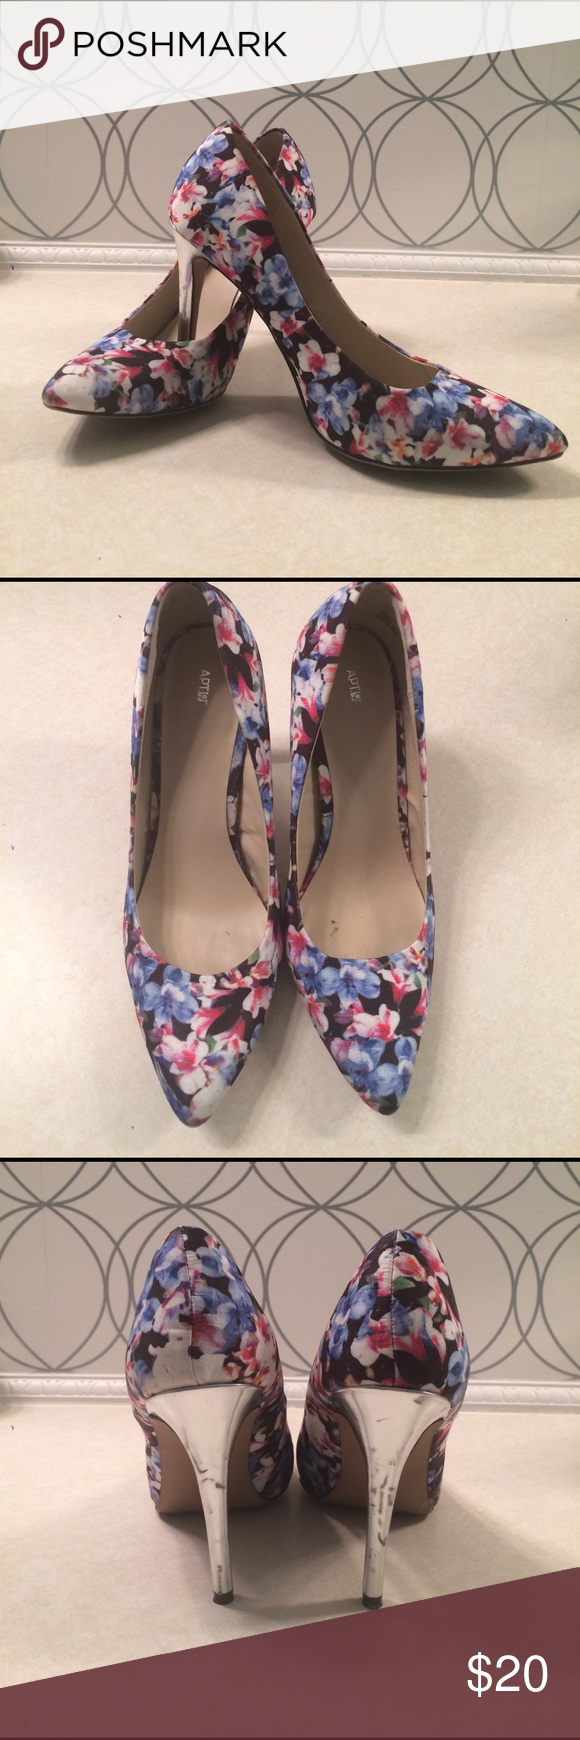 Floral heels 👠 Step into spring with these must haves! So fun and flirty. Only worn twice, some minor scuffing on heels as pictured, otherwise in great shape! True to size, 4' heel. Offers welcome! Apt. 9 Shoes Heels